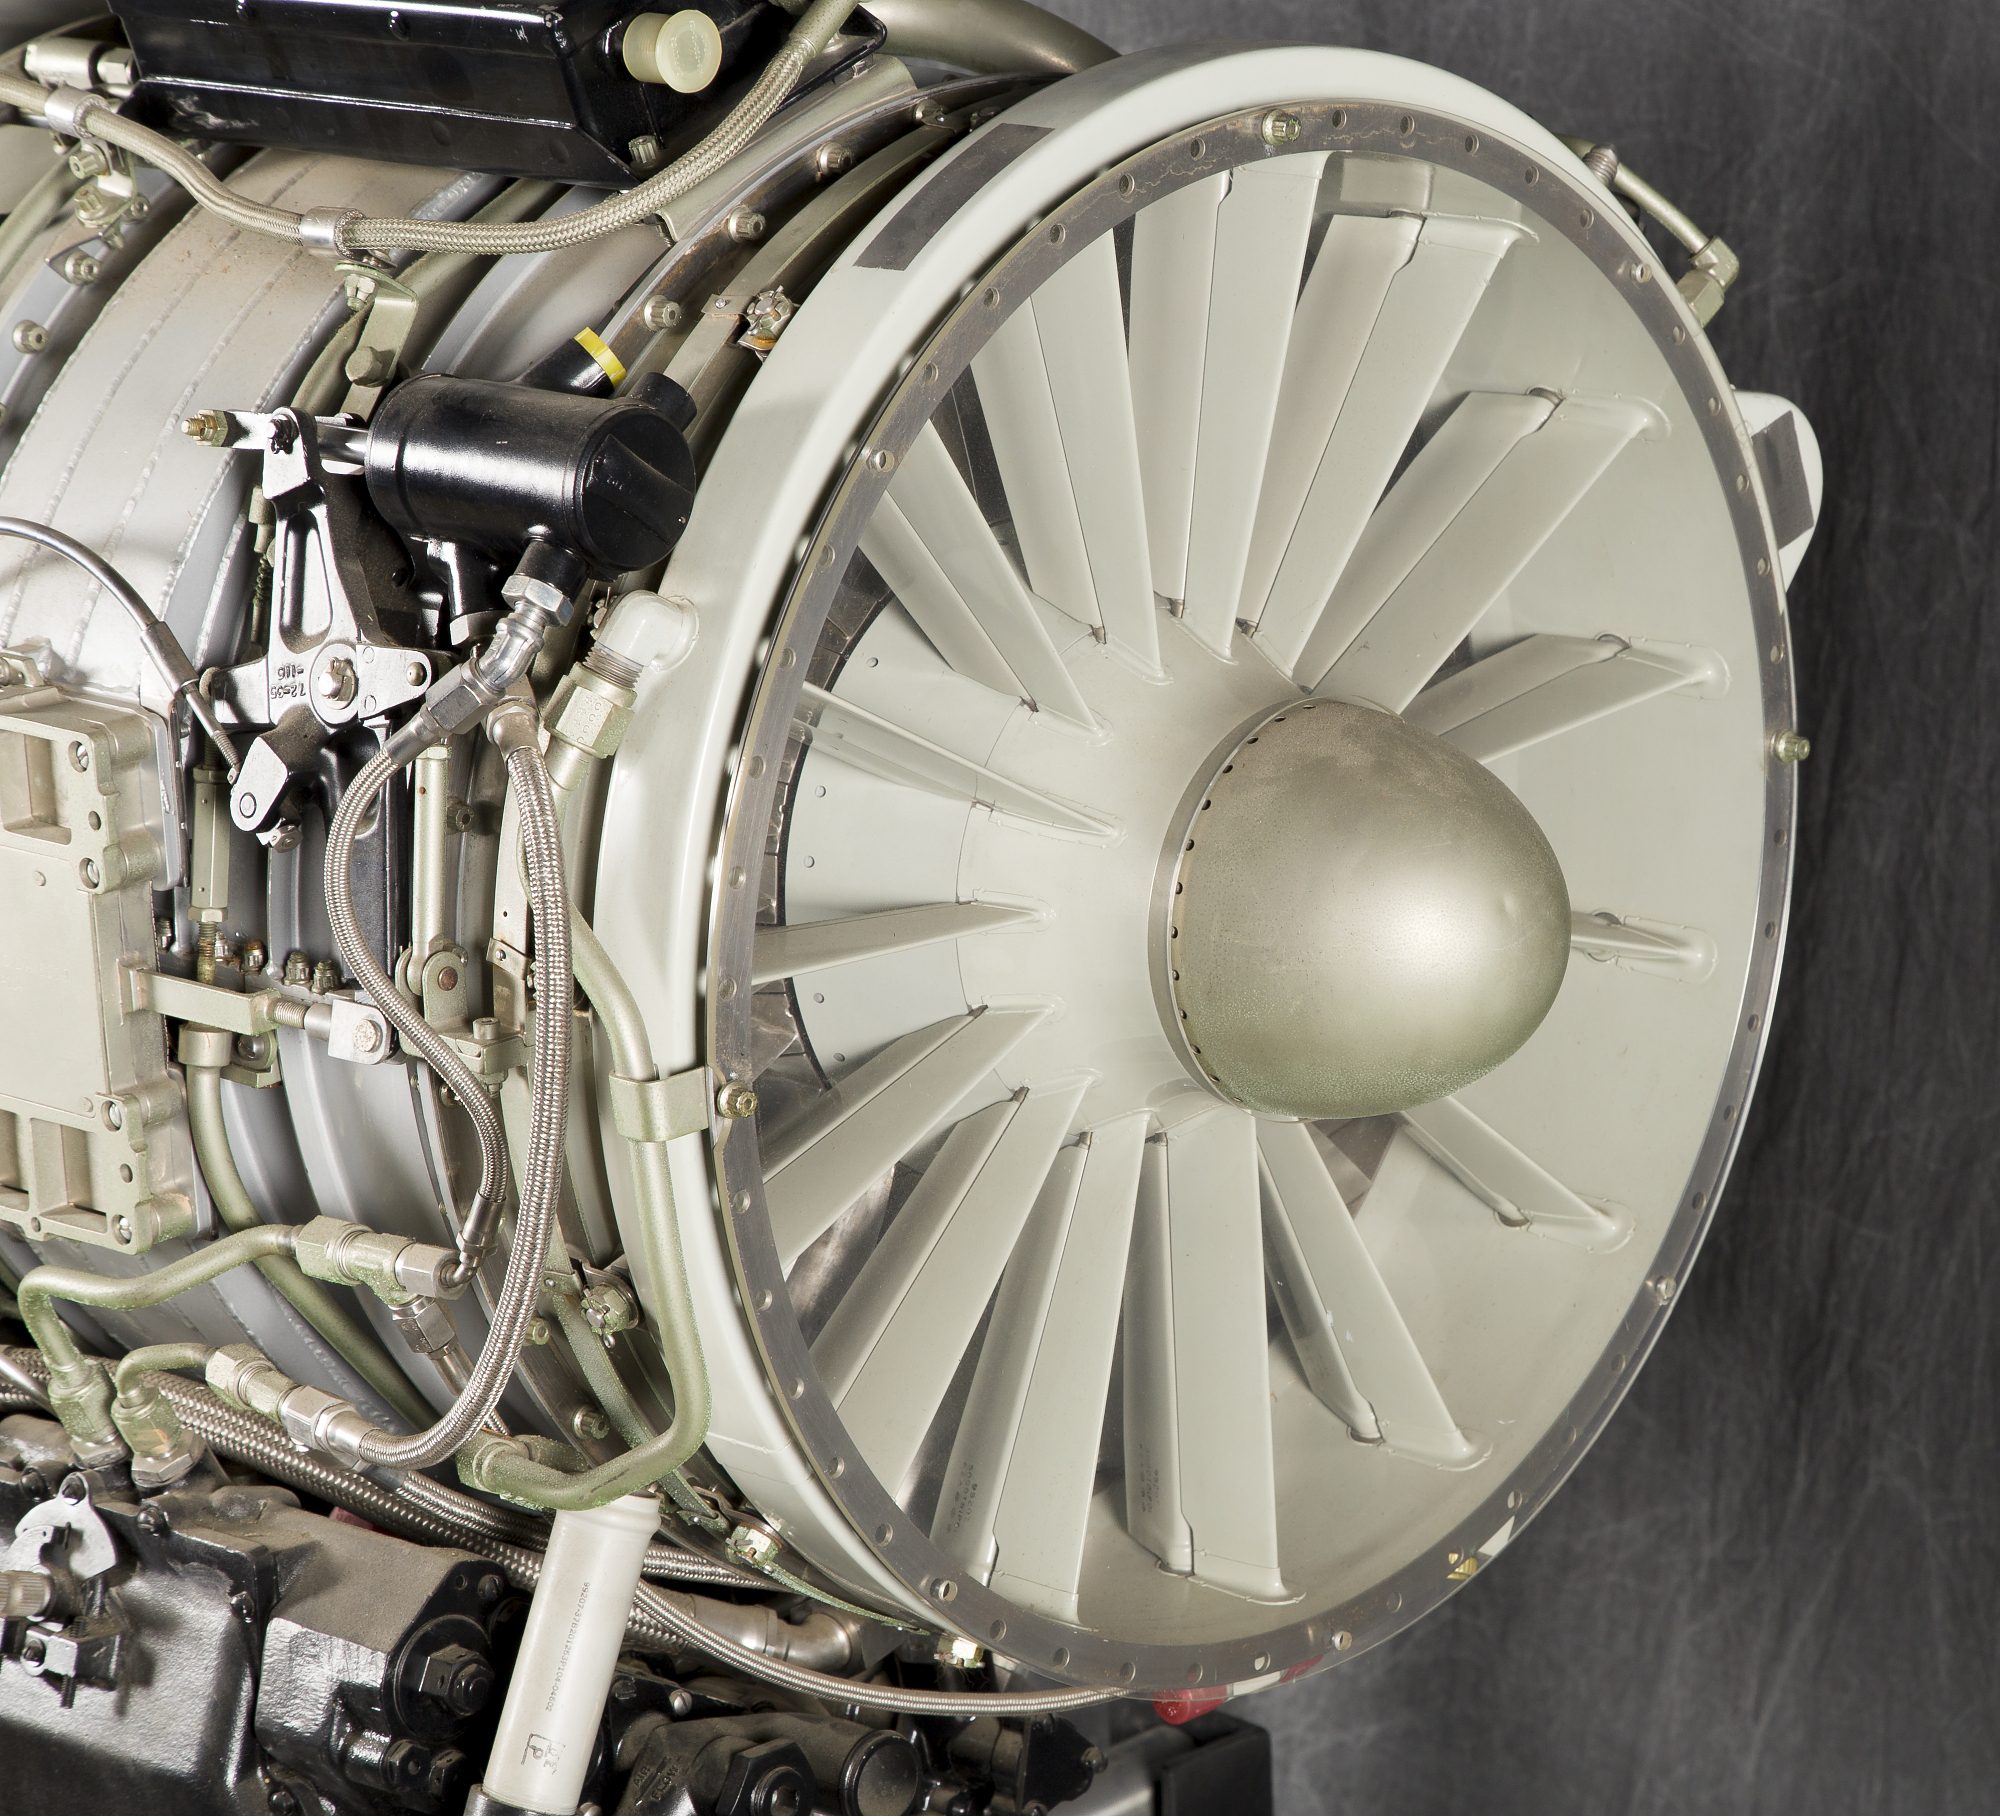 General Electric CJ610-6 Turbojet Engine   National Air and